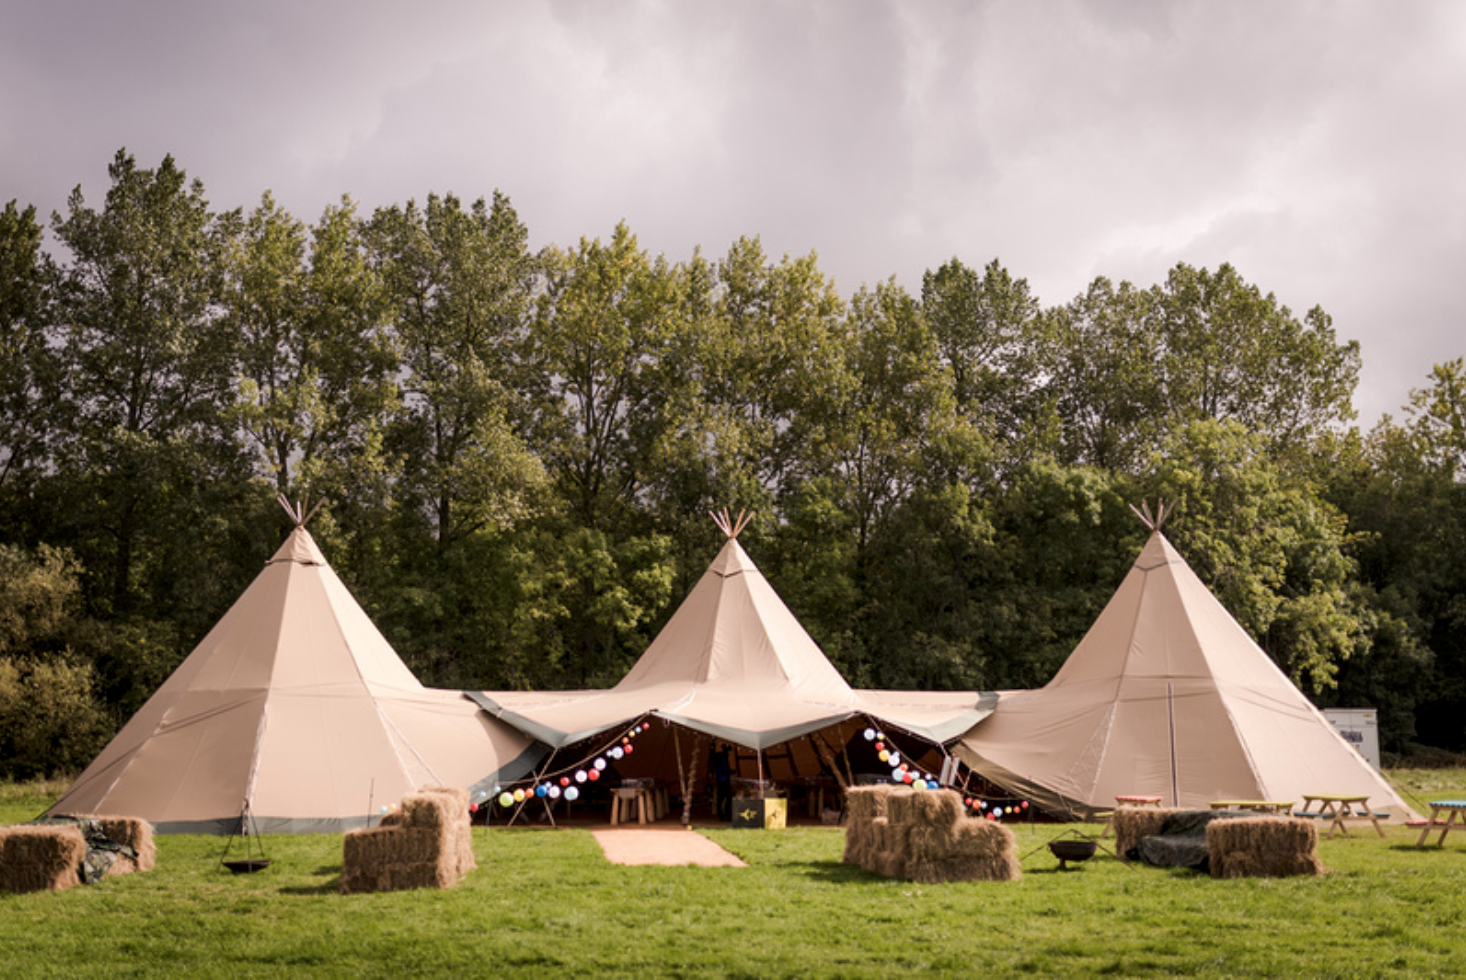 New Tipi Festival Venue Coming to South Wales 2022!